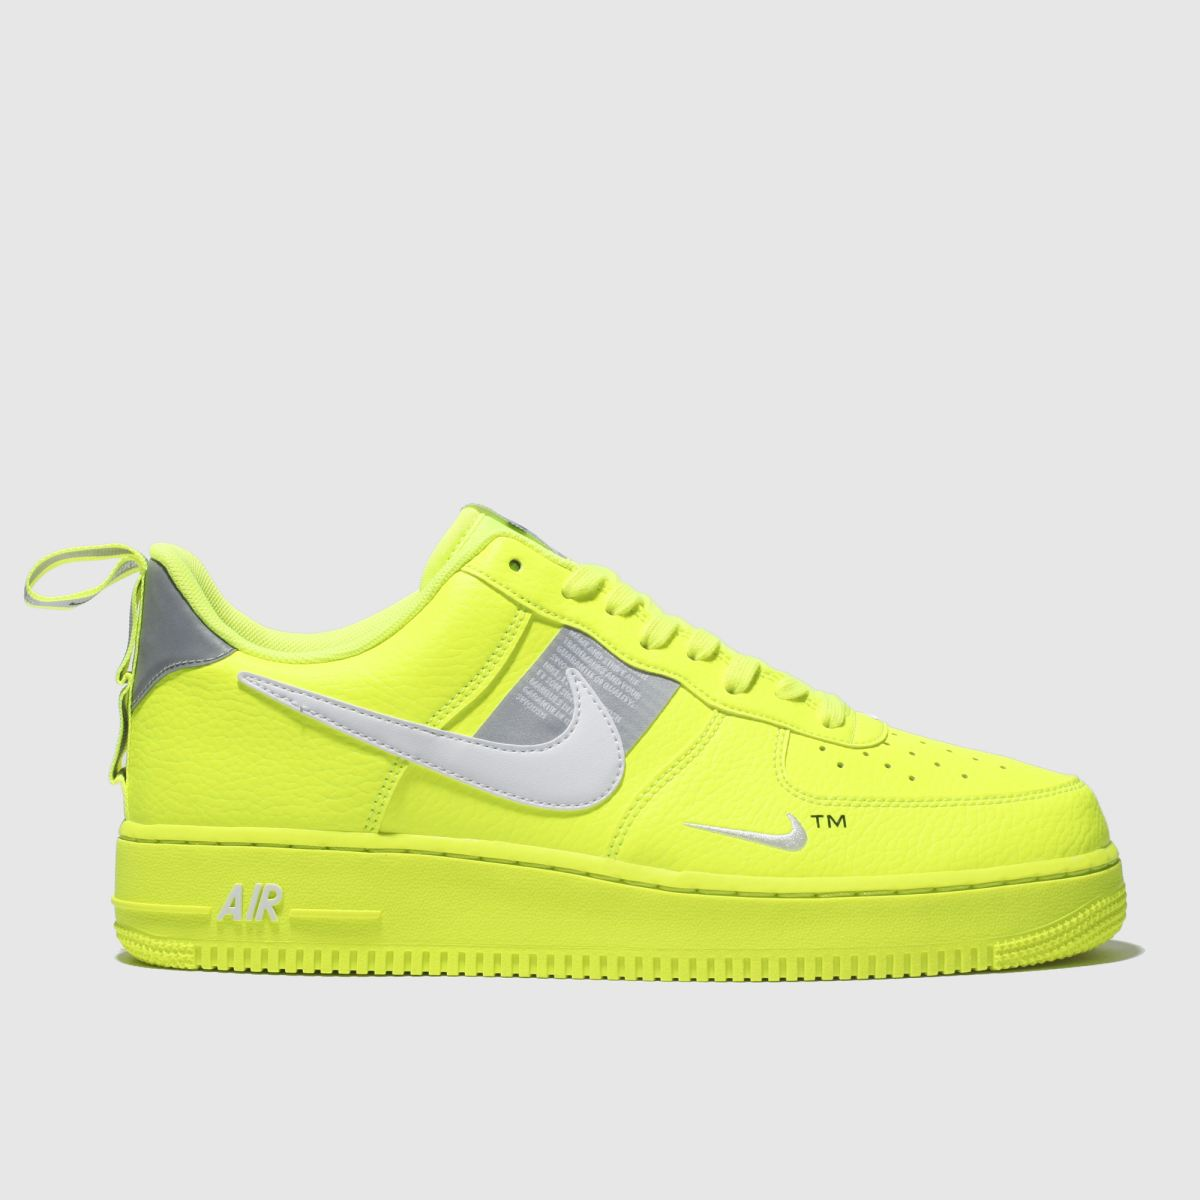 Nike Yellow Air Force 1 07 Lv8 Utility Trainers